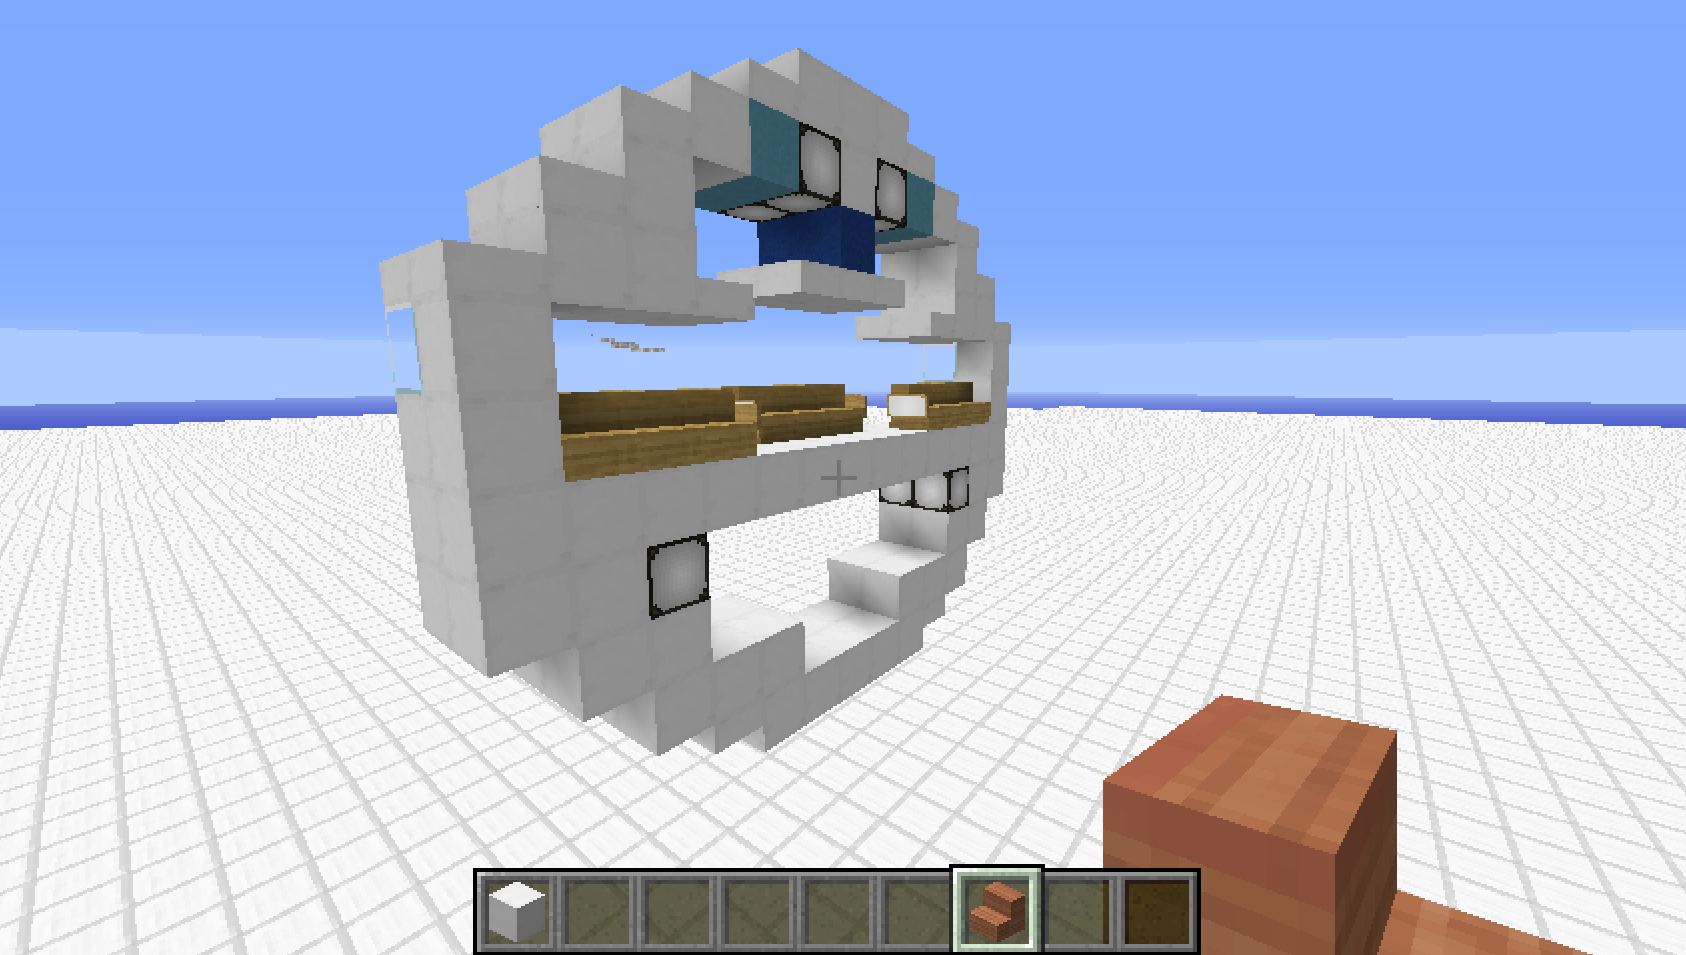 How to build a plane demo 7e7 minecraft blog for How do you make a blueprint